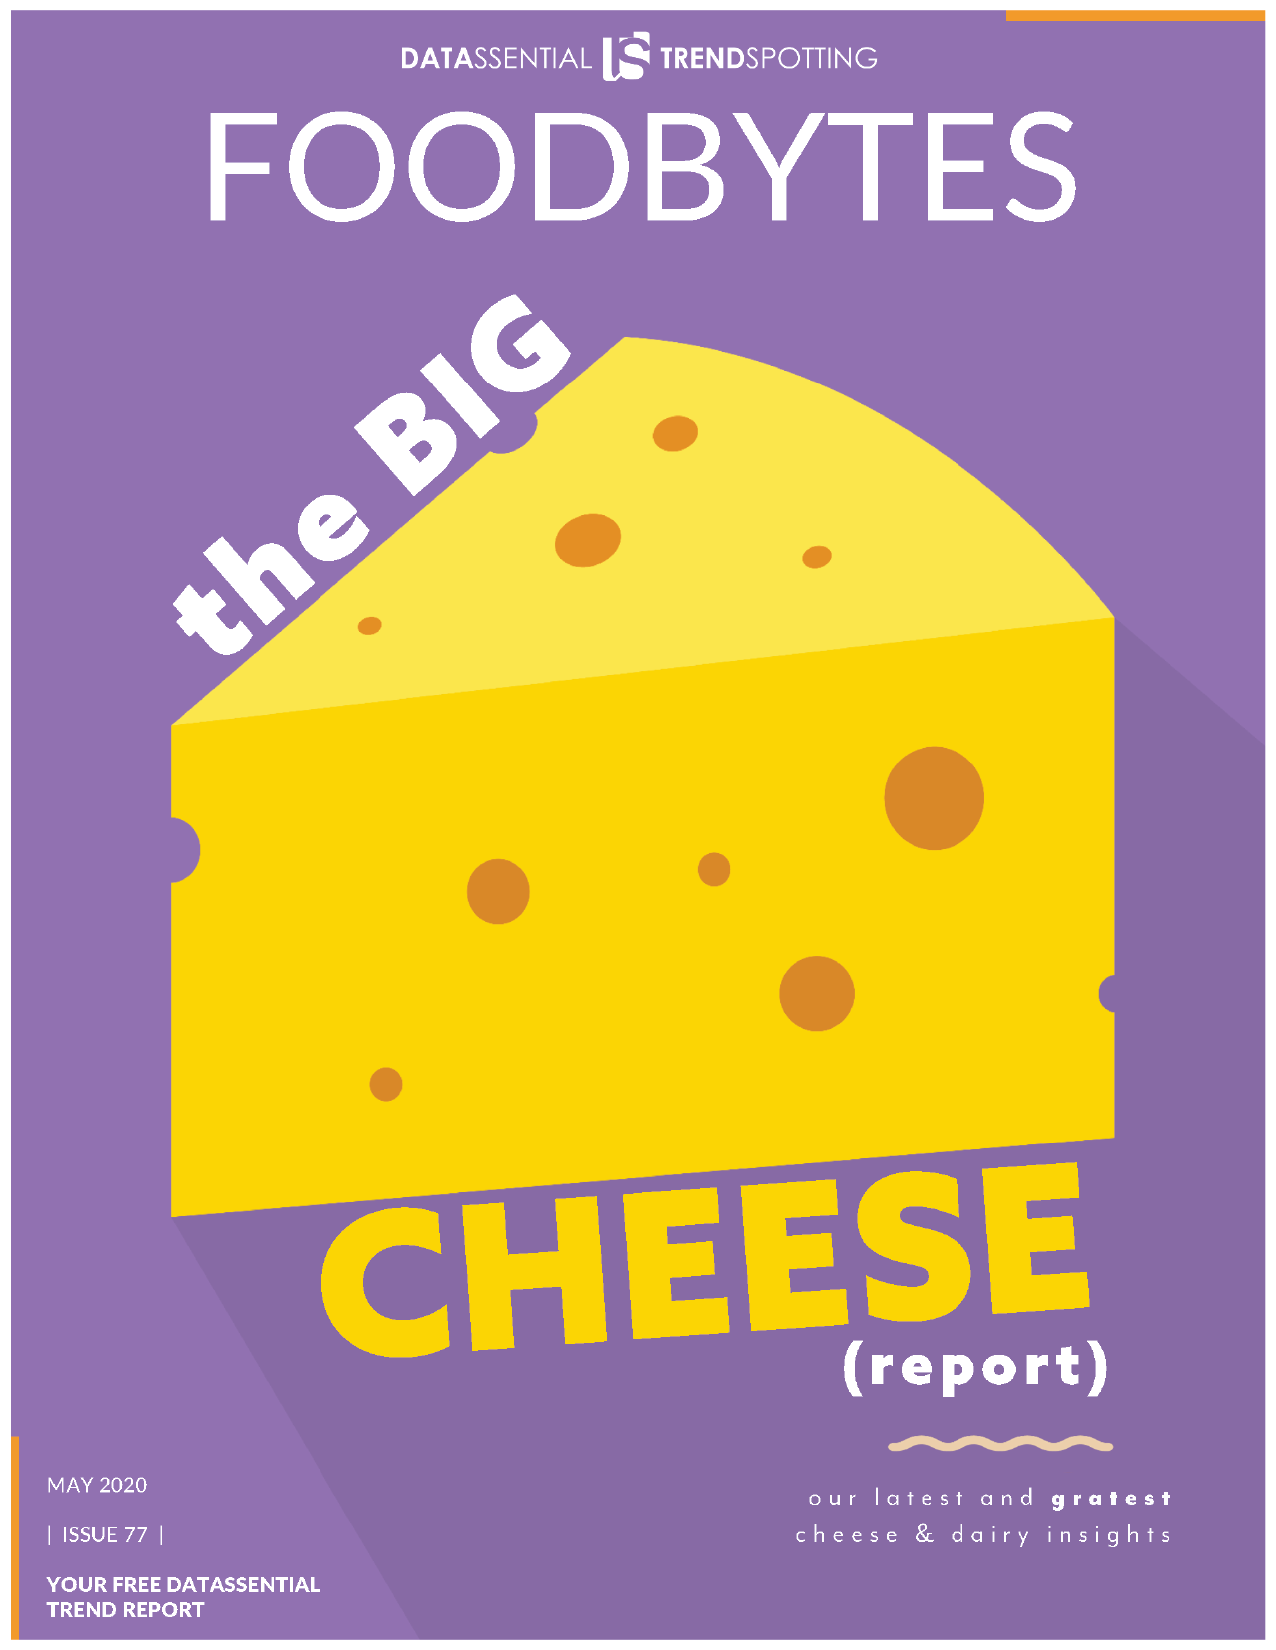 cheese trends 2020 foodbytes